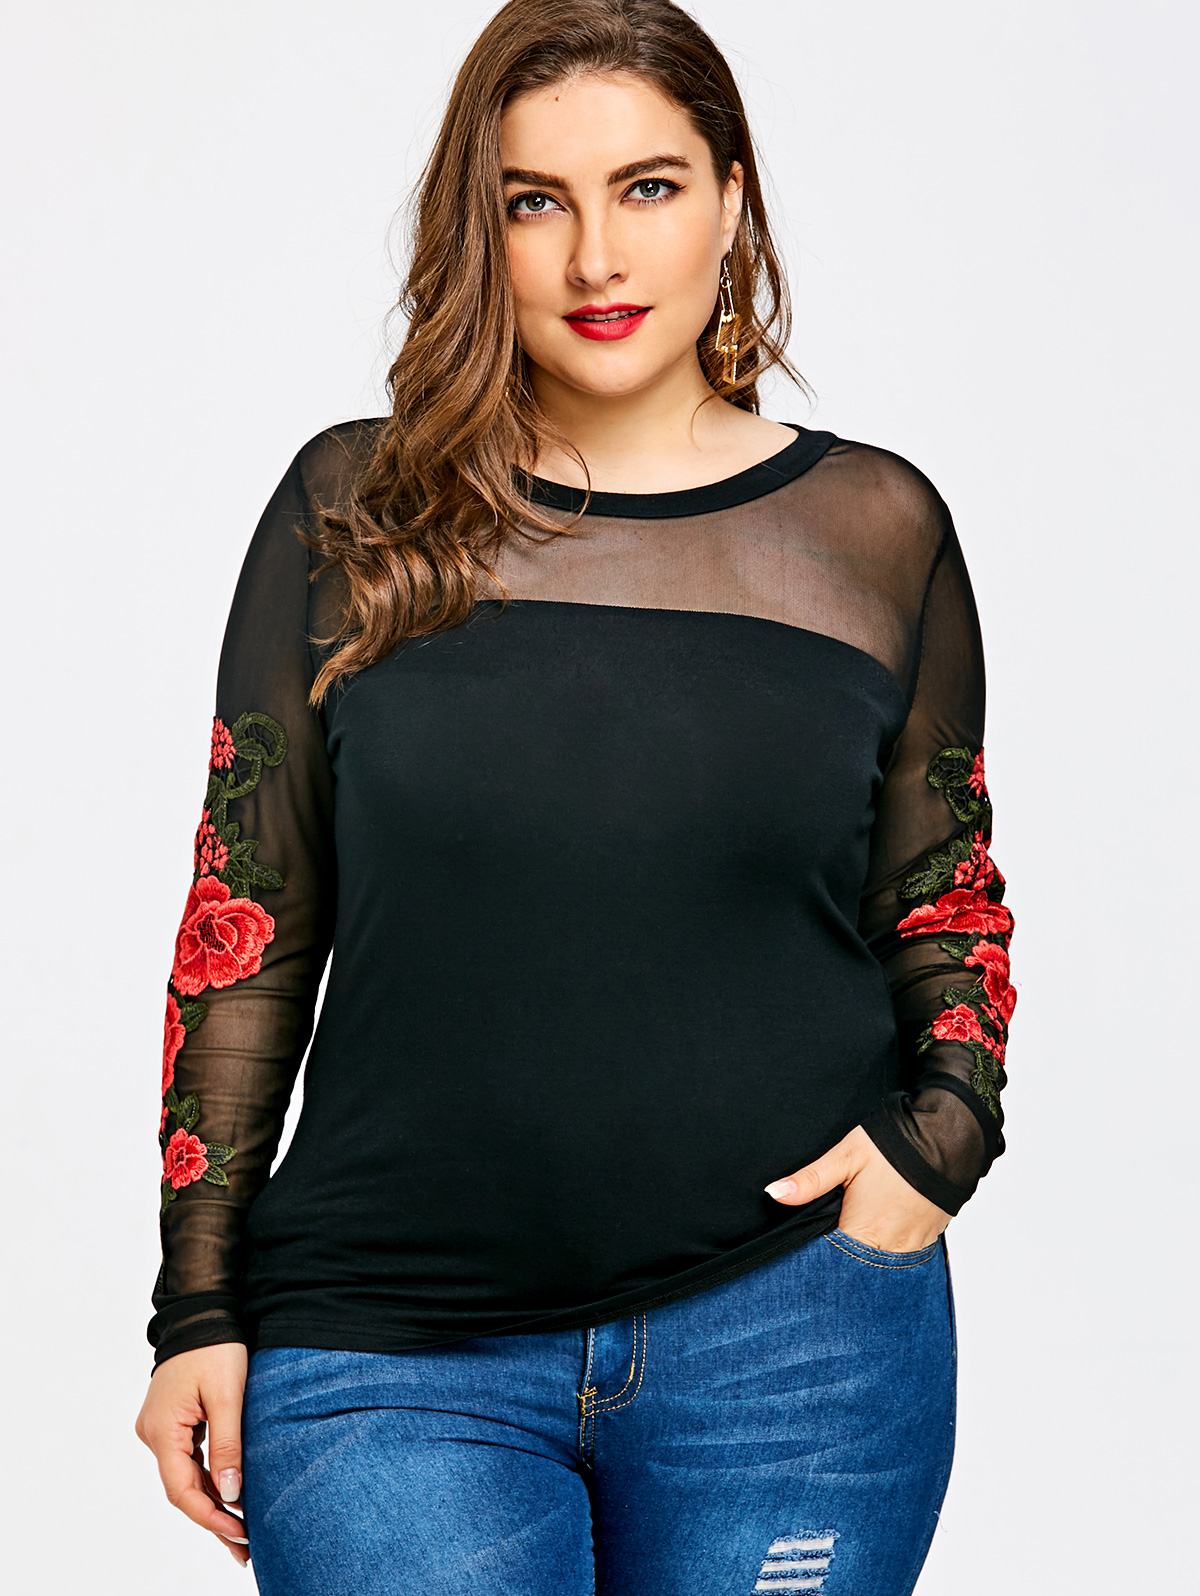 Wipalo Plus Size Embroidery Sheer Tops Shirts Women Tops -5165